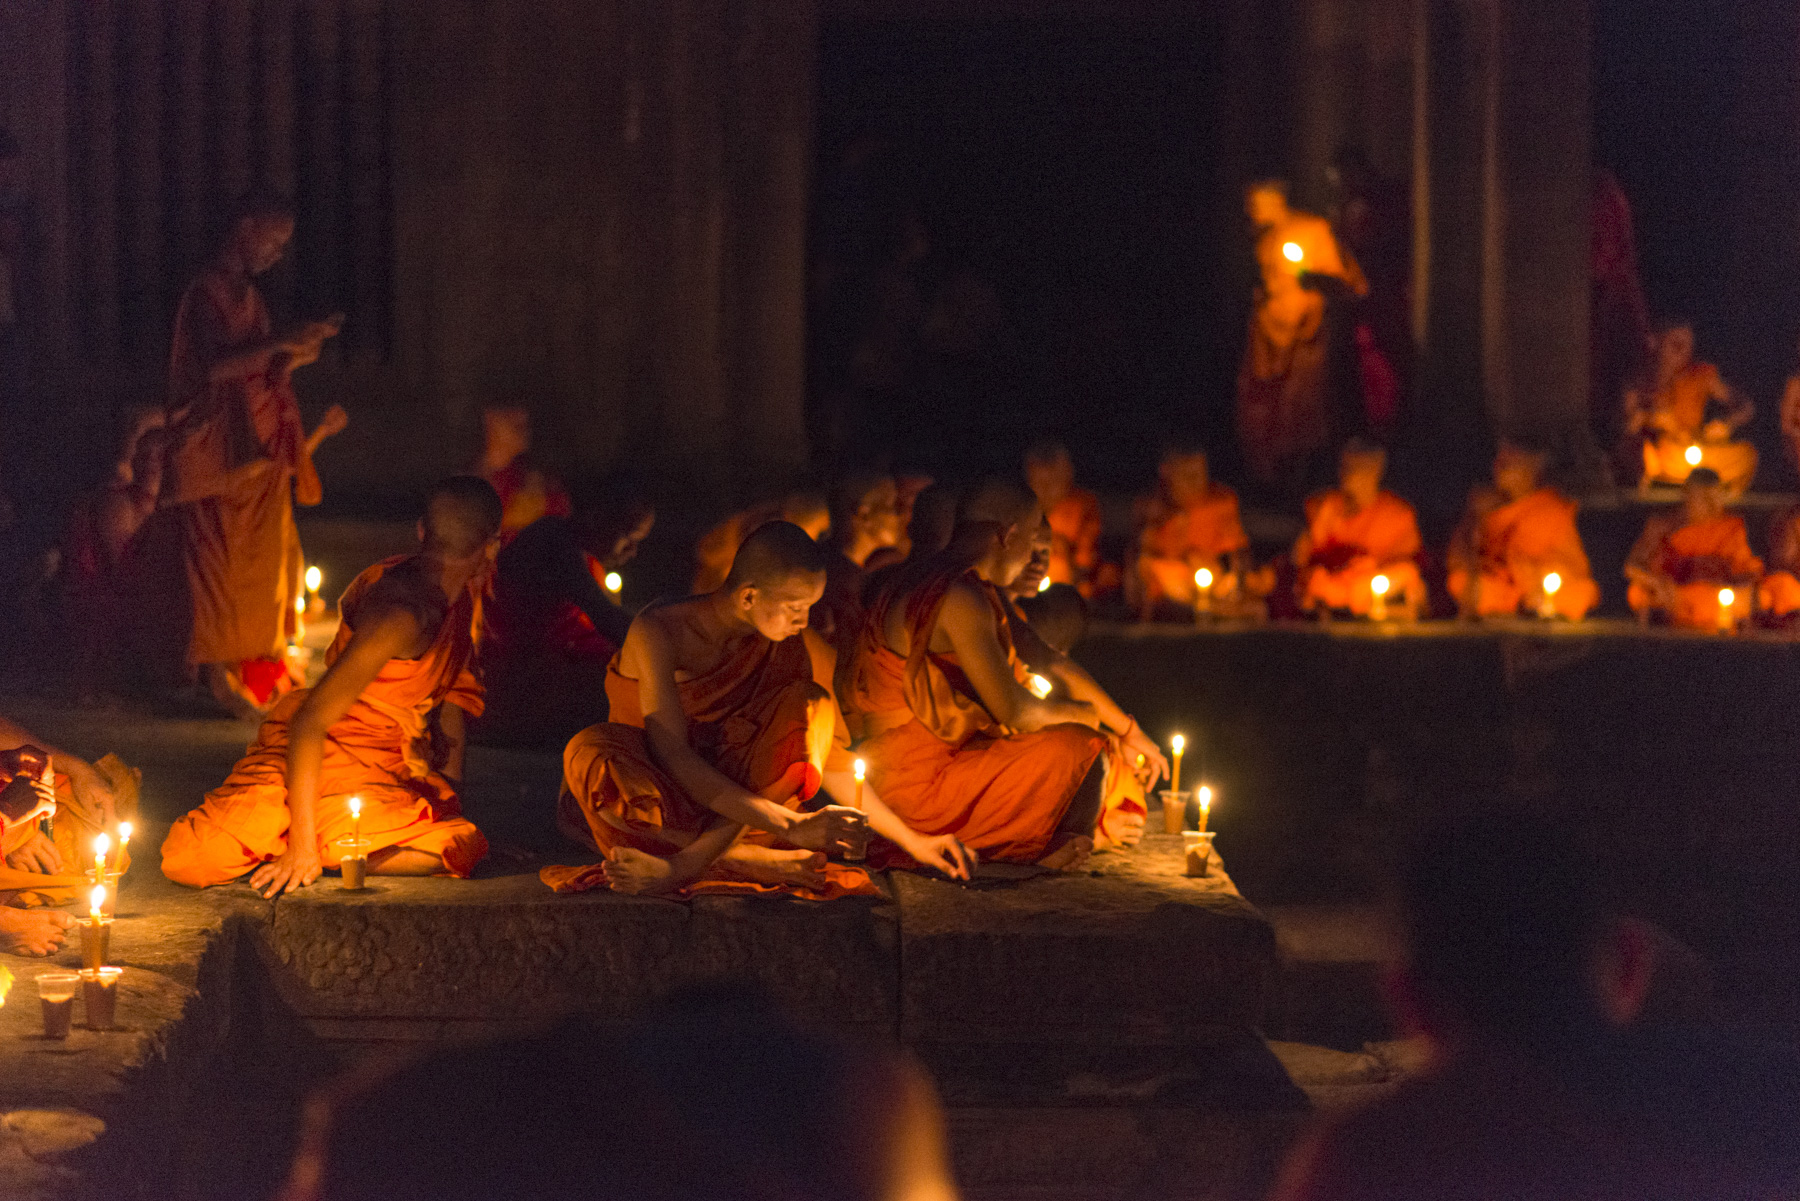 Monks getting ready to meditate by the pools of the Gallery of 1,000 Buddhas inside Angkor Wat.